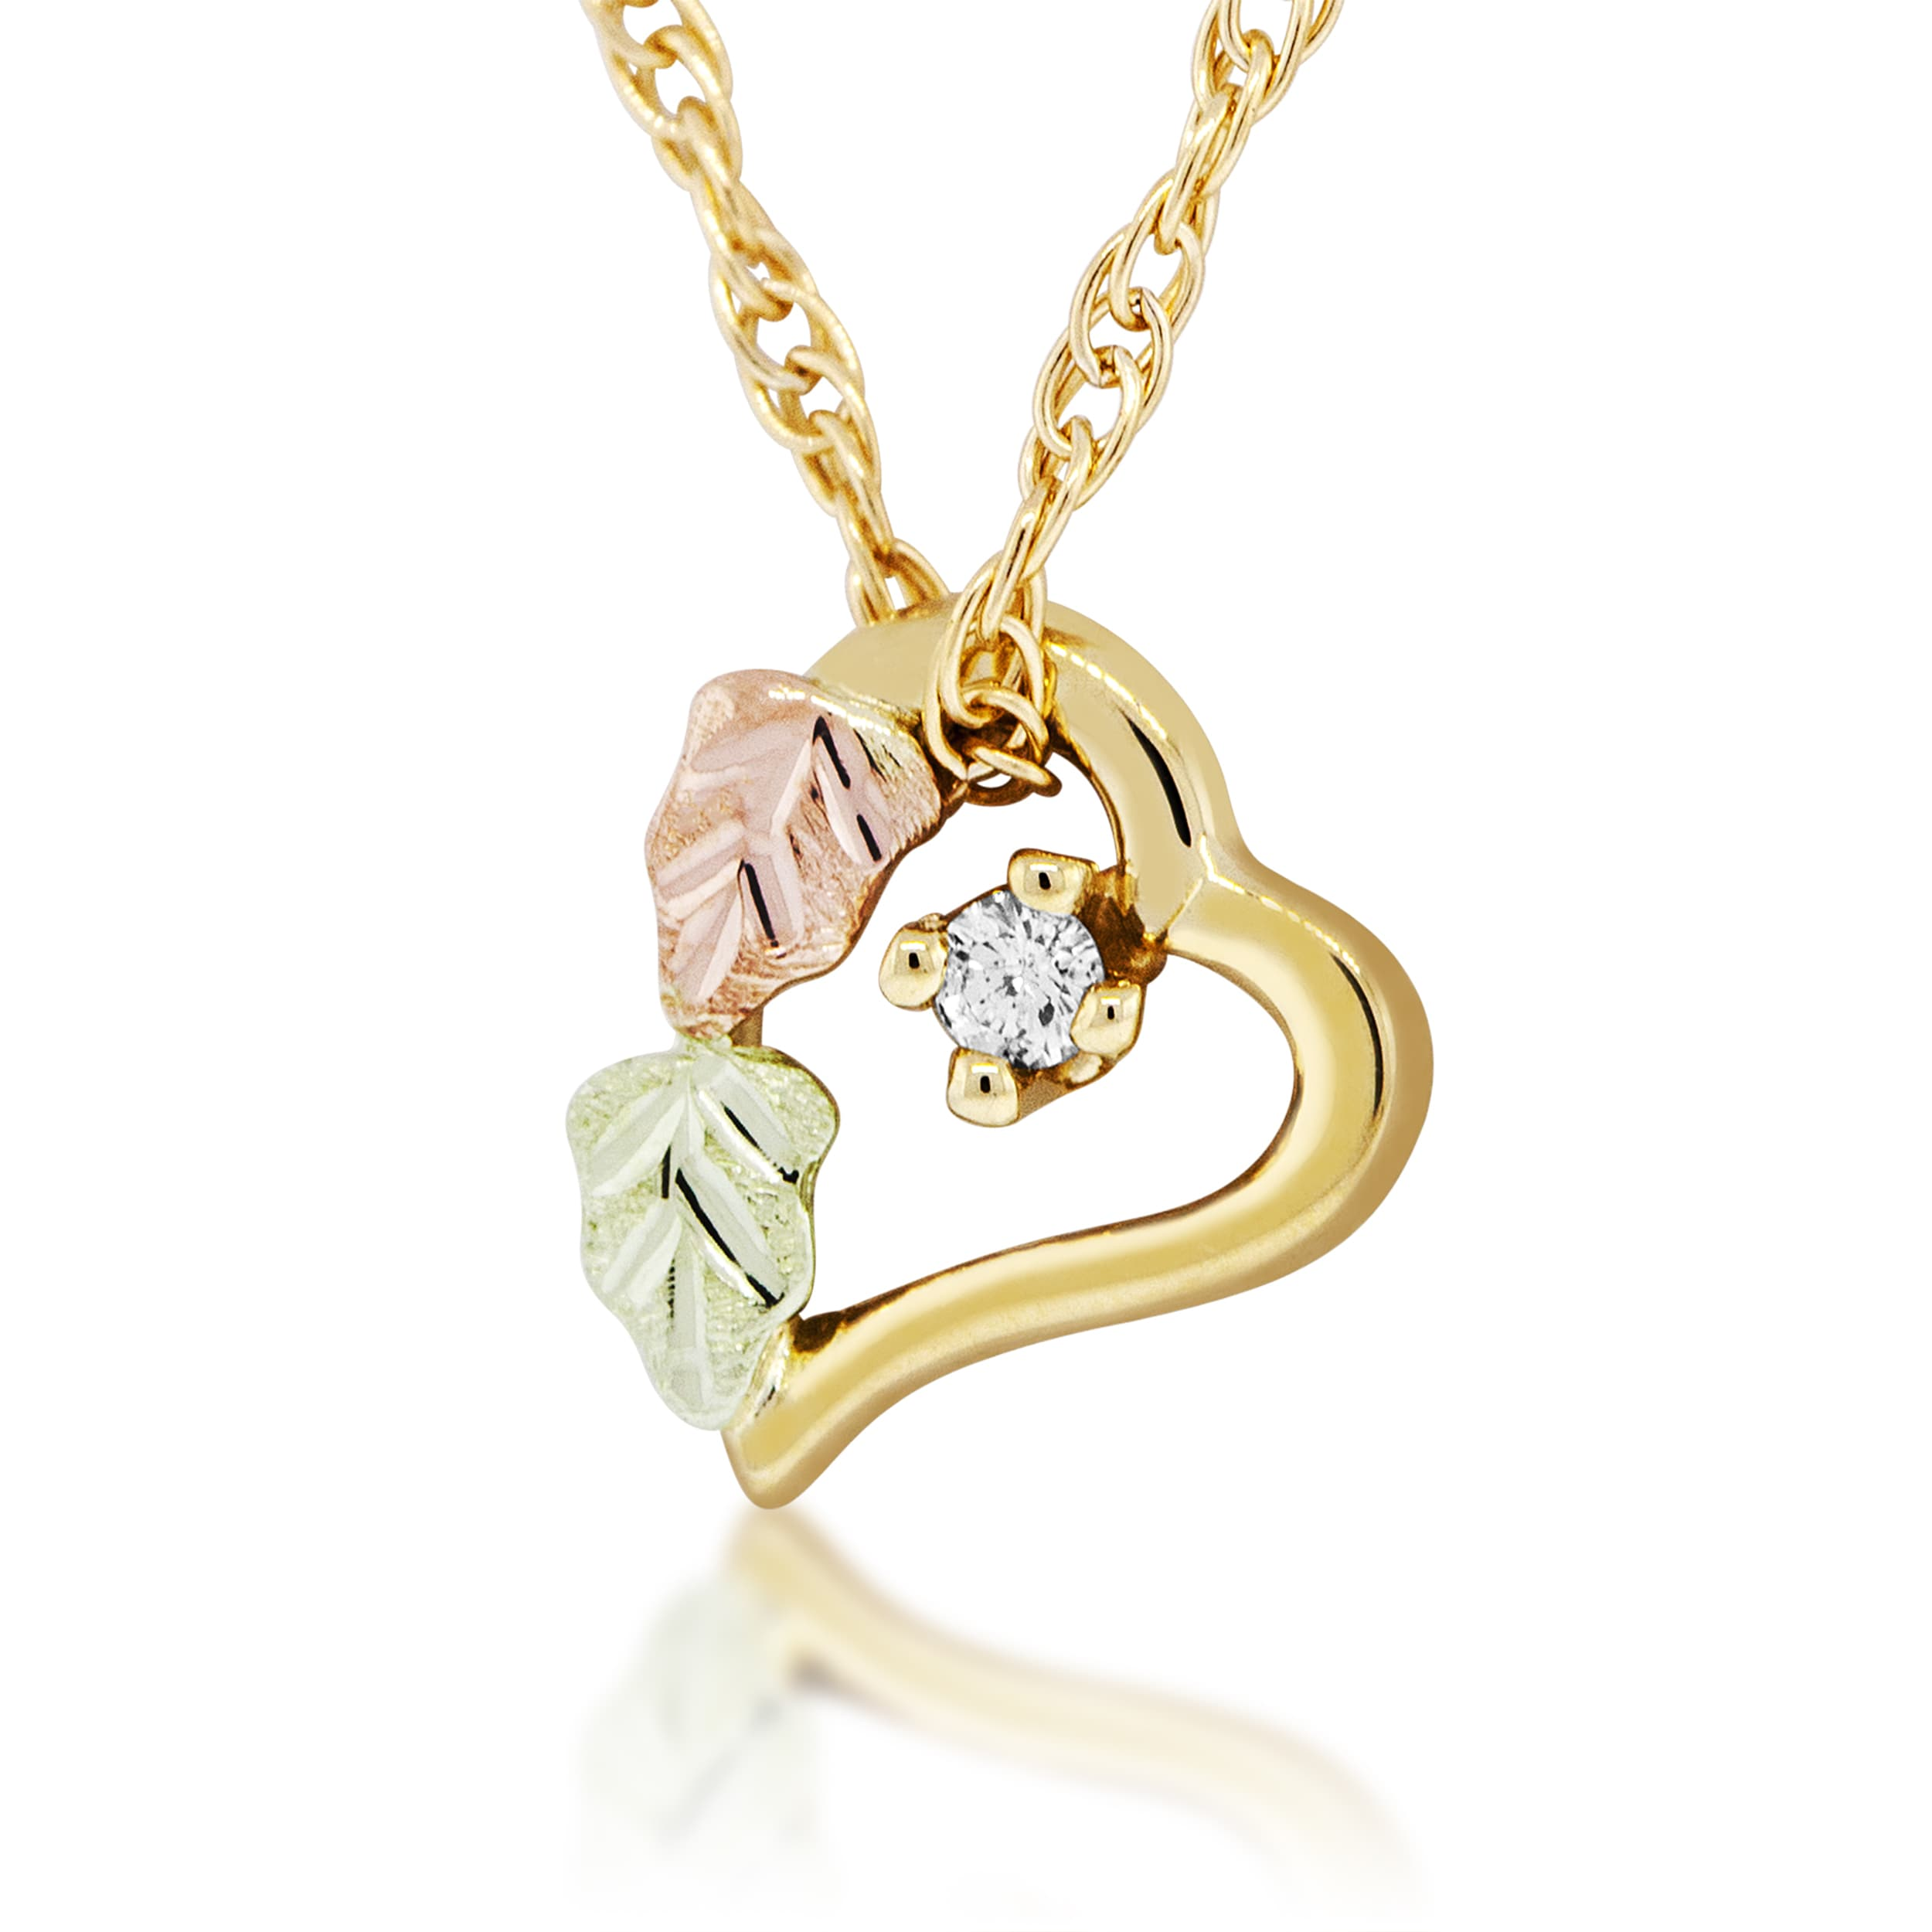 Shop black hills gold diamond accent heart pendant free shipping shop black hills gold diamond accent heart pendant free shipping today overstock 10700050 aloadofball Image collections